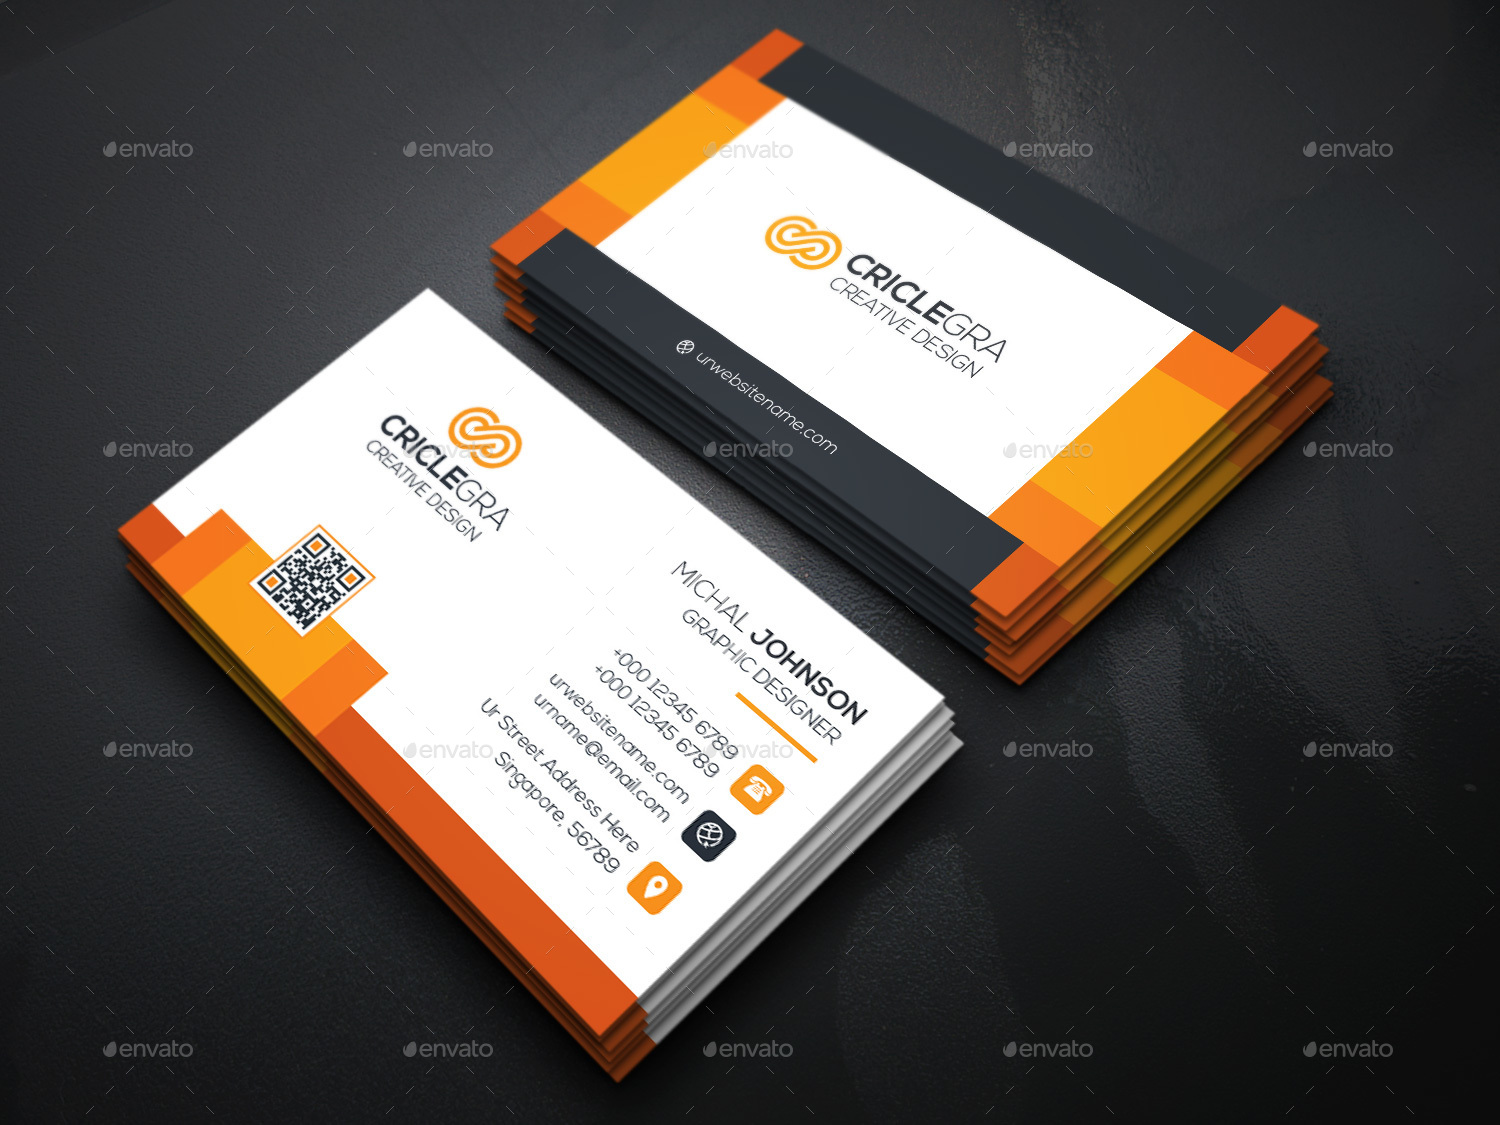 Corporate business card by generousart graphicriver image set04technology business cardg reheart